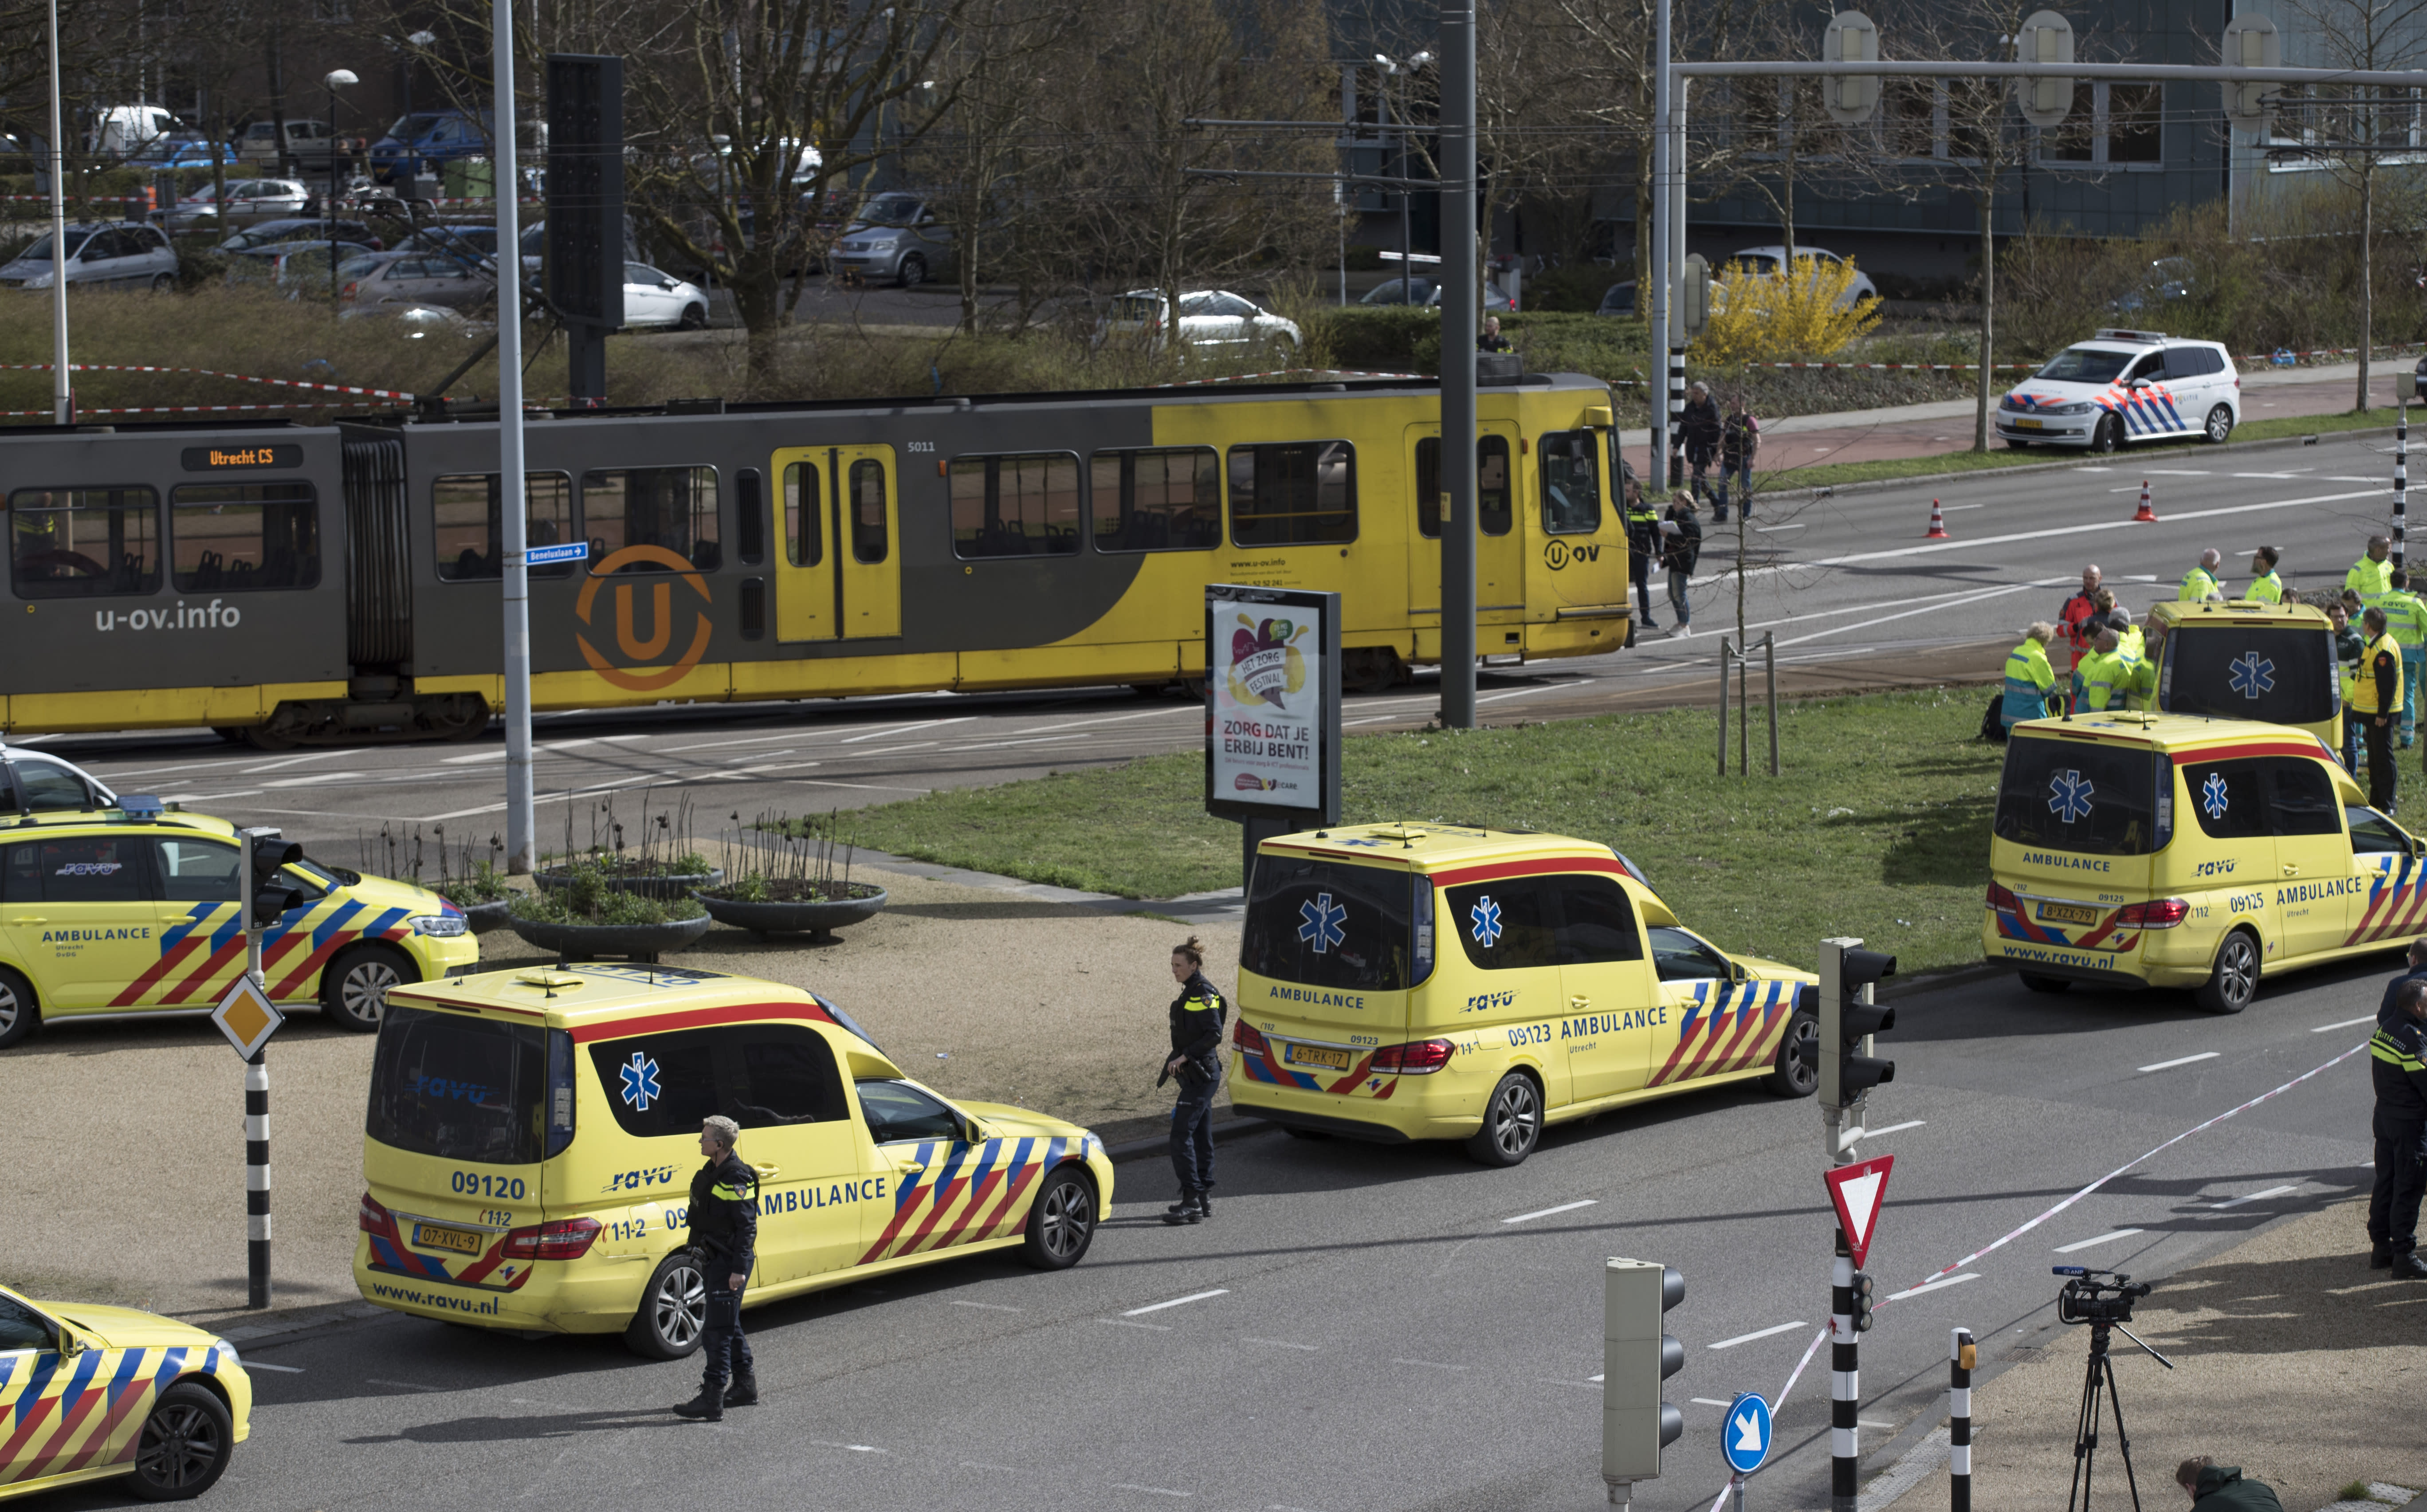 "FILE - In this Monday, March 18, 2019 file photo, ambulances are parked next to a tram after a shooting incident in Utrecht, Netherlands. Dutch prosecutors say they have a ""strong indication"" that a man accused of fatally shooting four passengers on a tram in the central city of Utrecht in March had a ""terrorist motive."" Prosecutors say that 37-year-old suspect Gokmen Tanis left a handwritten letter in a getaway car that said in Dutch: ""I'm doing this for my religion, you kill Muslims and you want to take our religion away from us, but you won't succeed."" (AP Photo/Peter Dejong, File)"